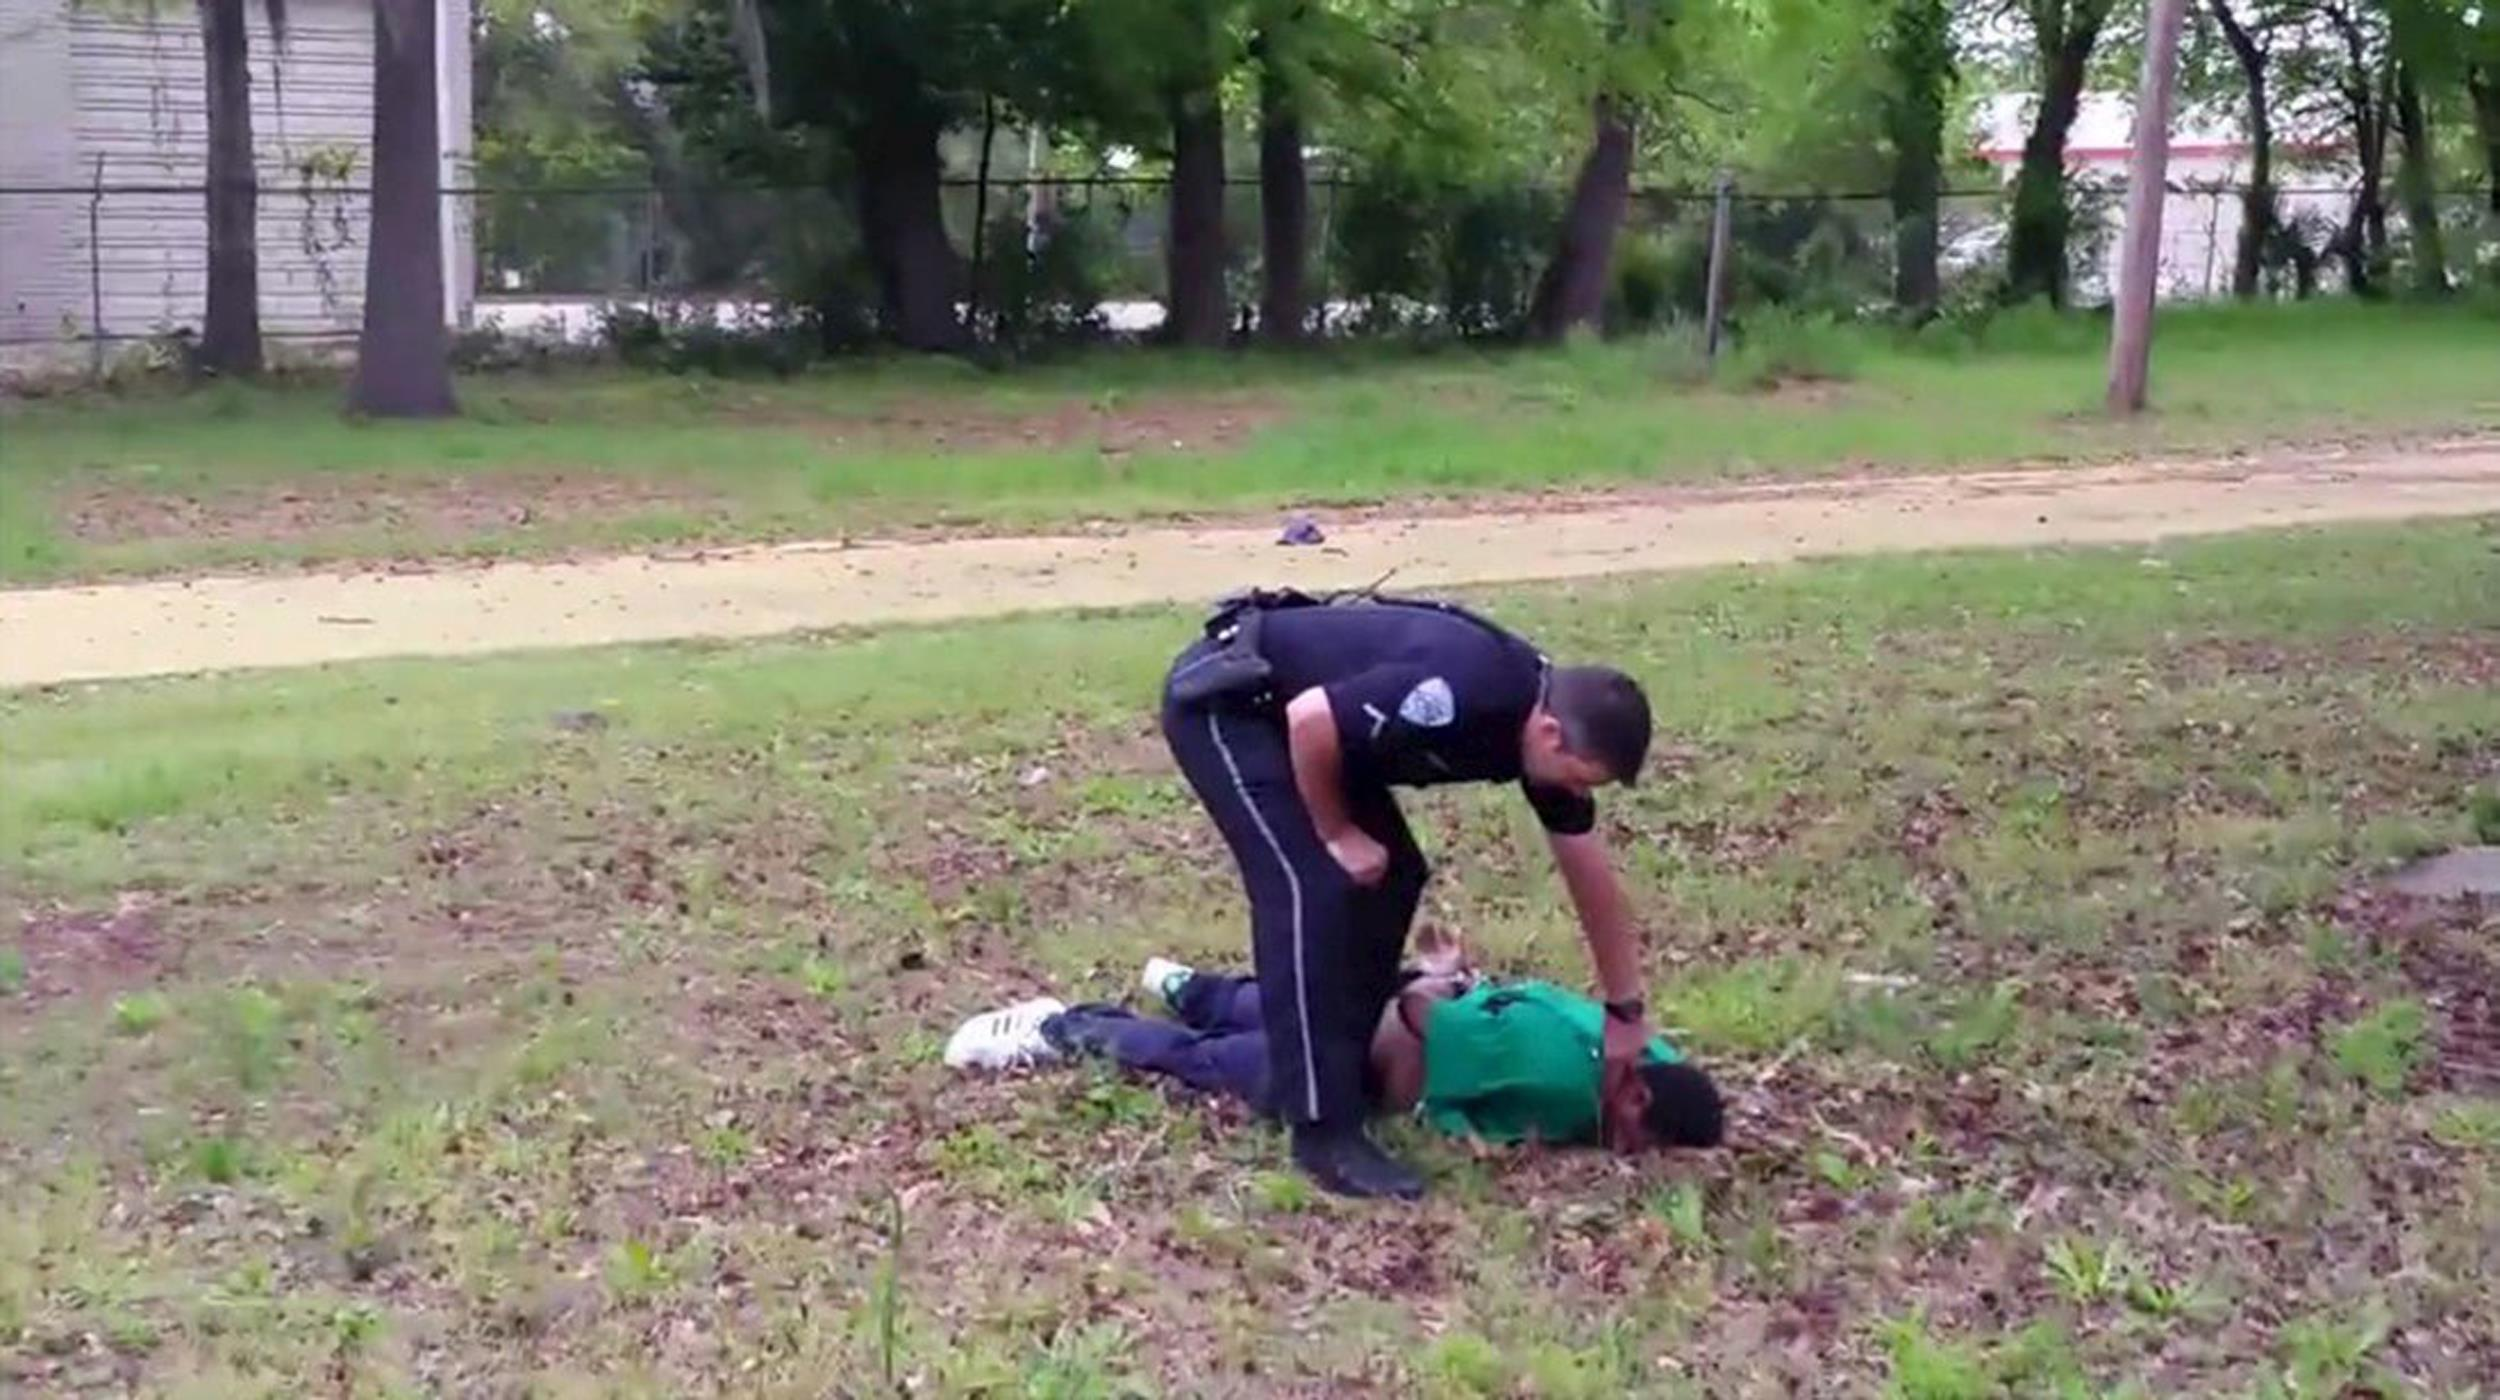 The Michael Slager Incident